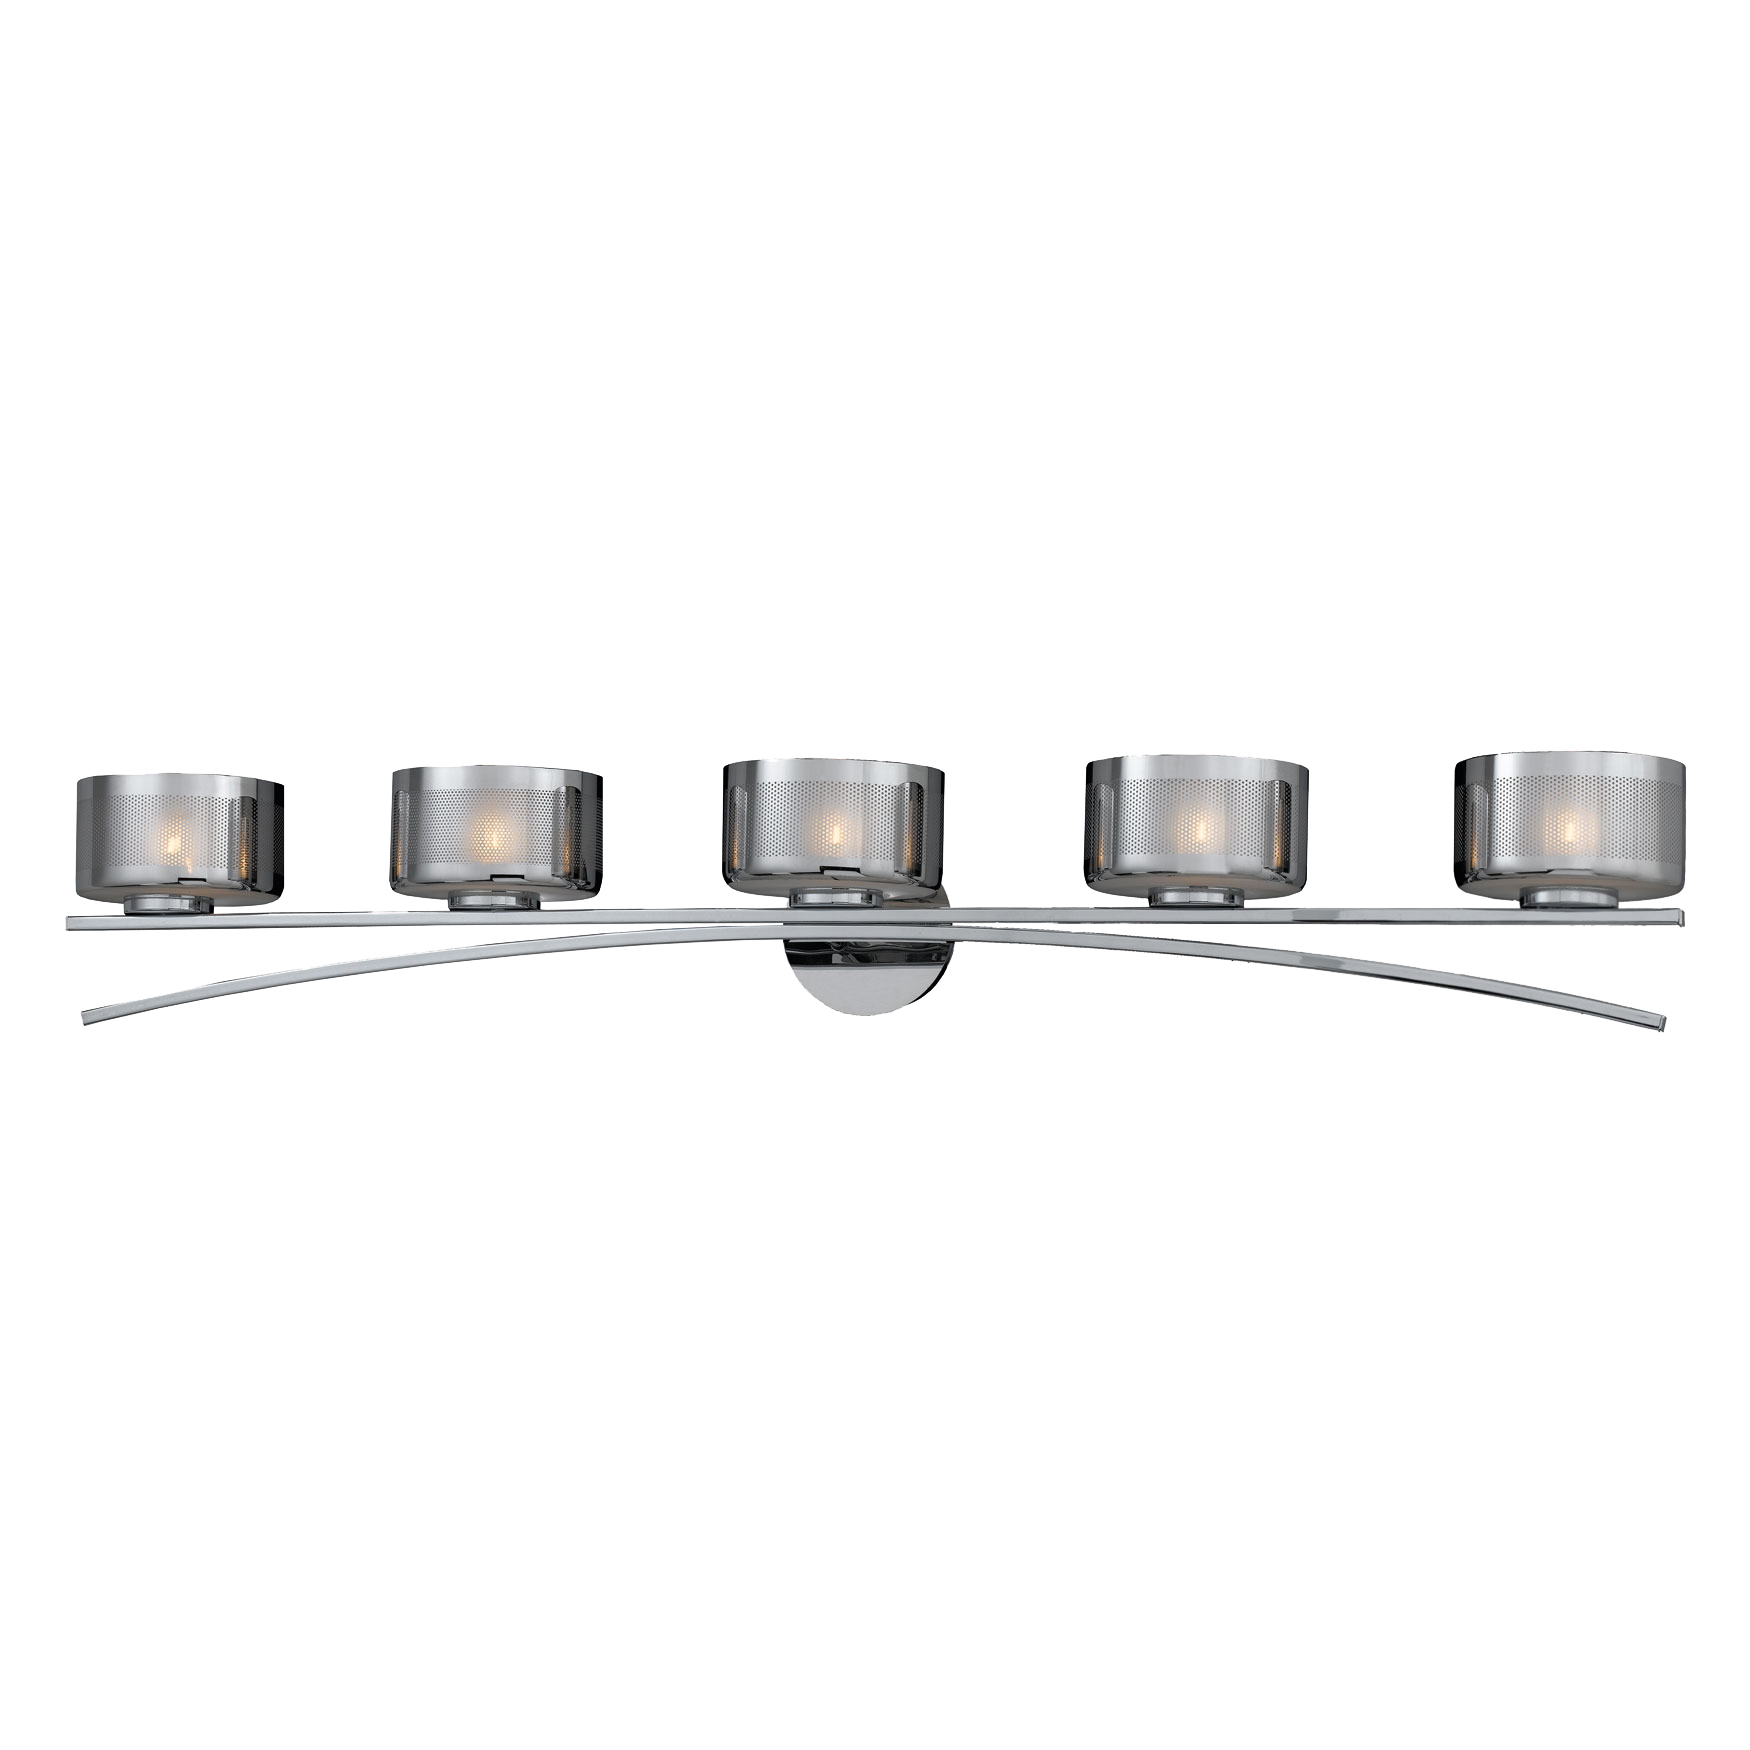 Bathroom Vanity Lights Chrome Finish : Lumenno Int Bodorlo Collection 5 Light Xenon Bath Vanity In A Chrome Finish Chrome Plated Finish ...